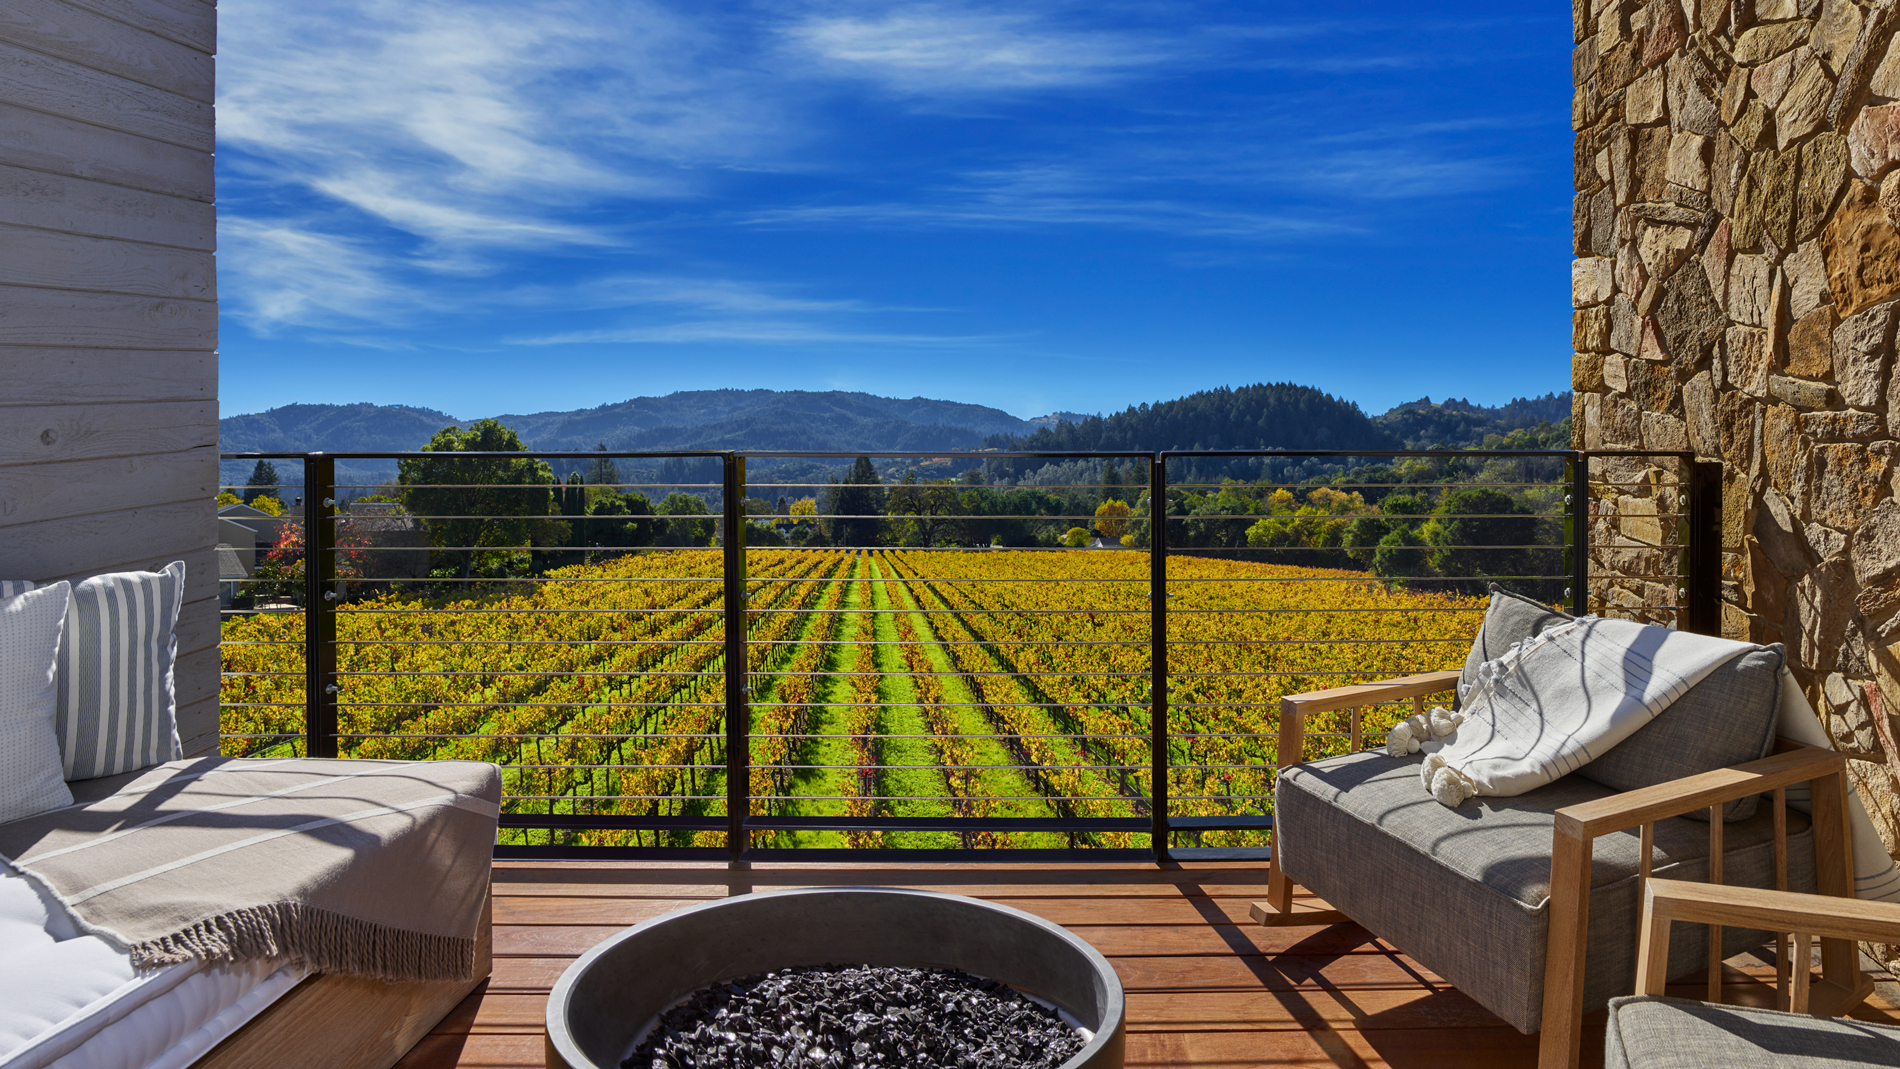 8 Things to Do in California Wine Country Now